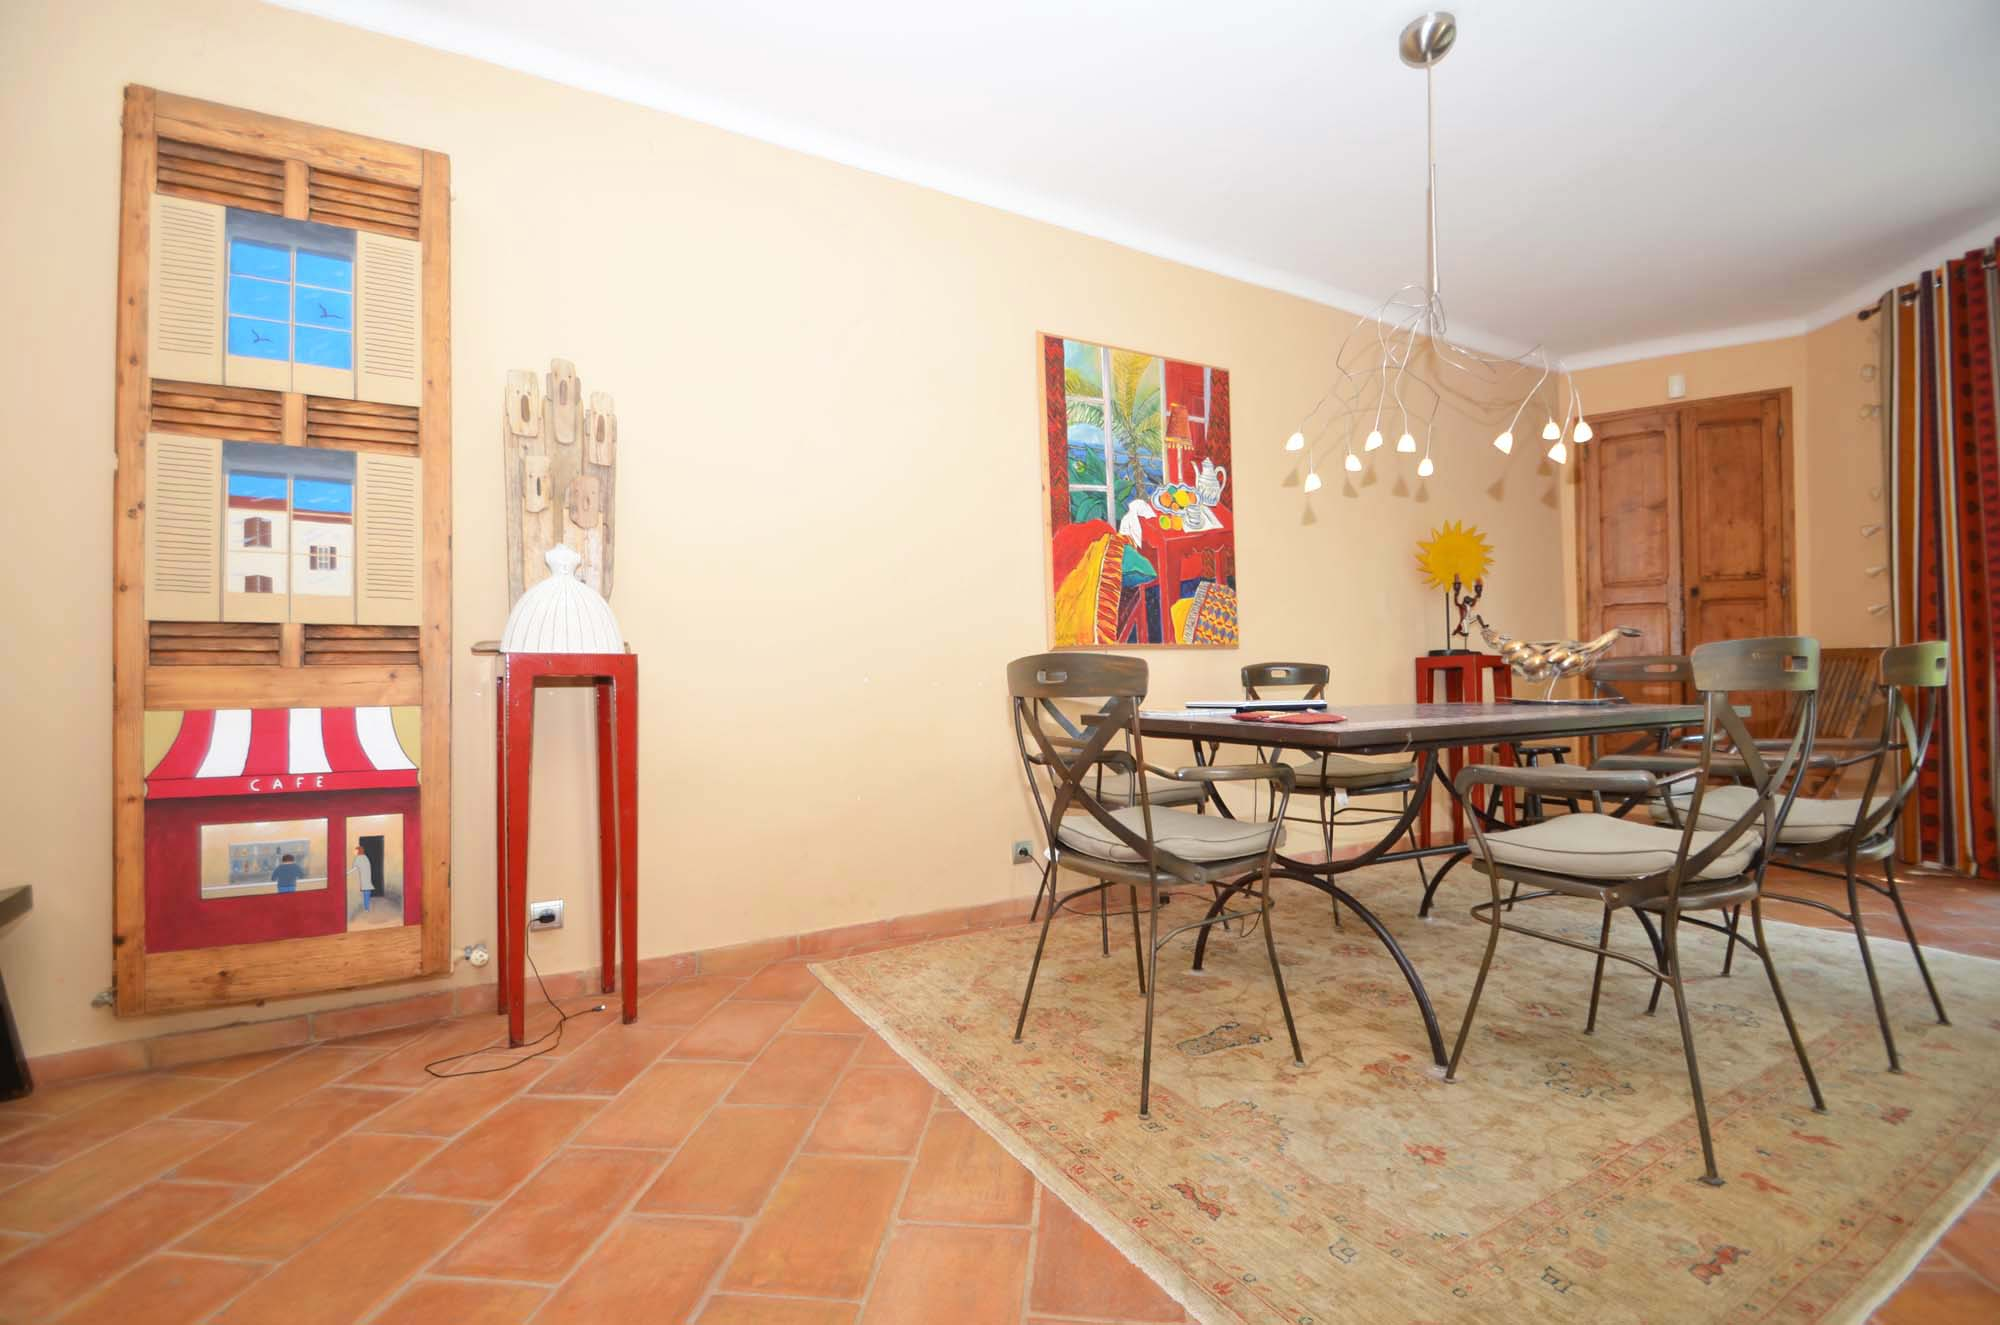 Holiday house with pool in Provence-Côte d\'Azur in Eyragues (France)